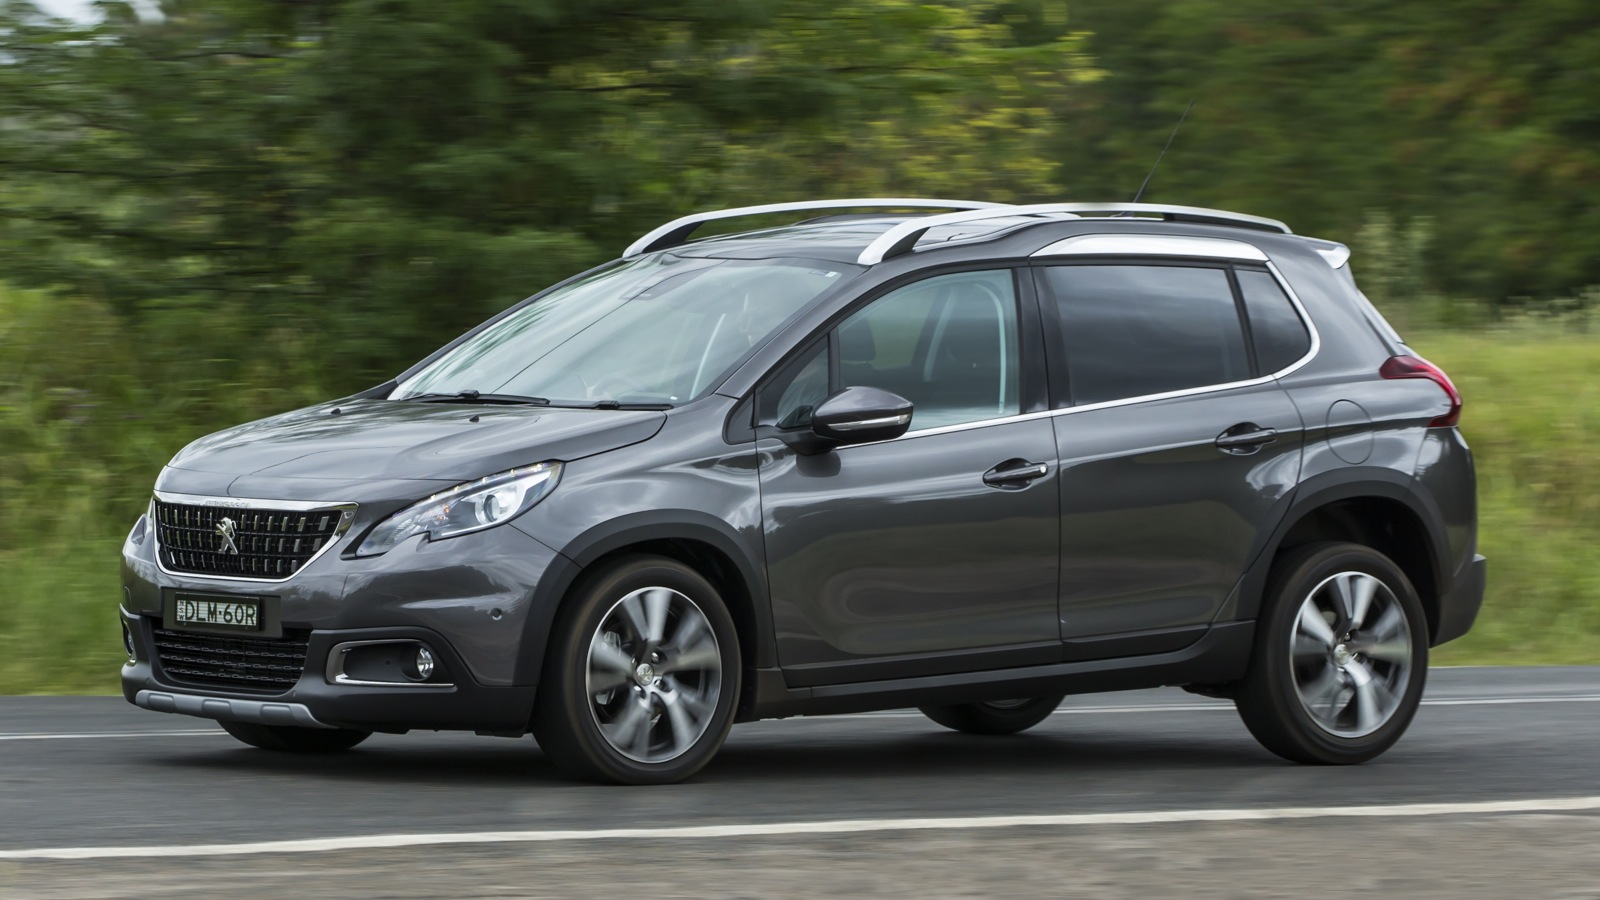 2017 Peugeot 2008 Pricing And Specs Photos Caradvice